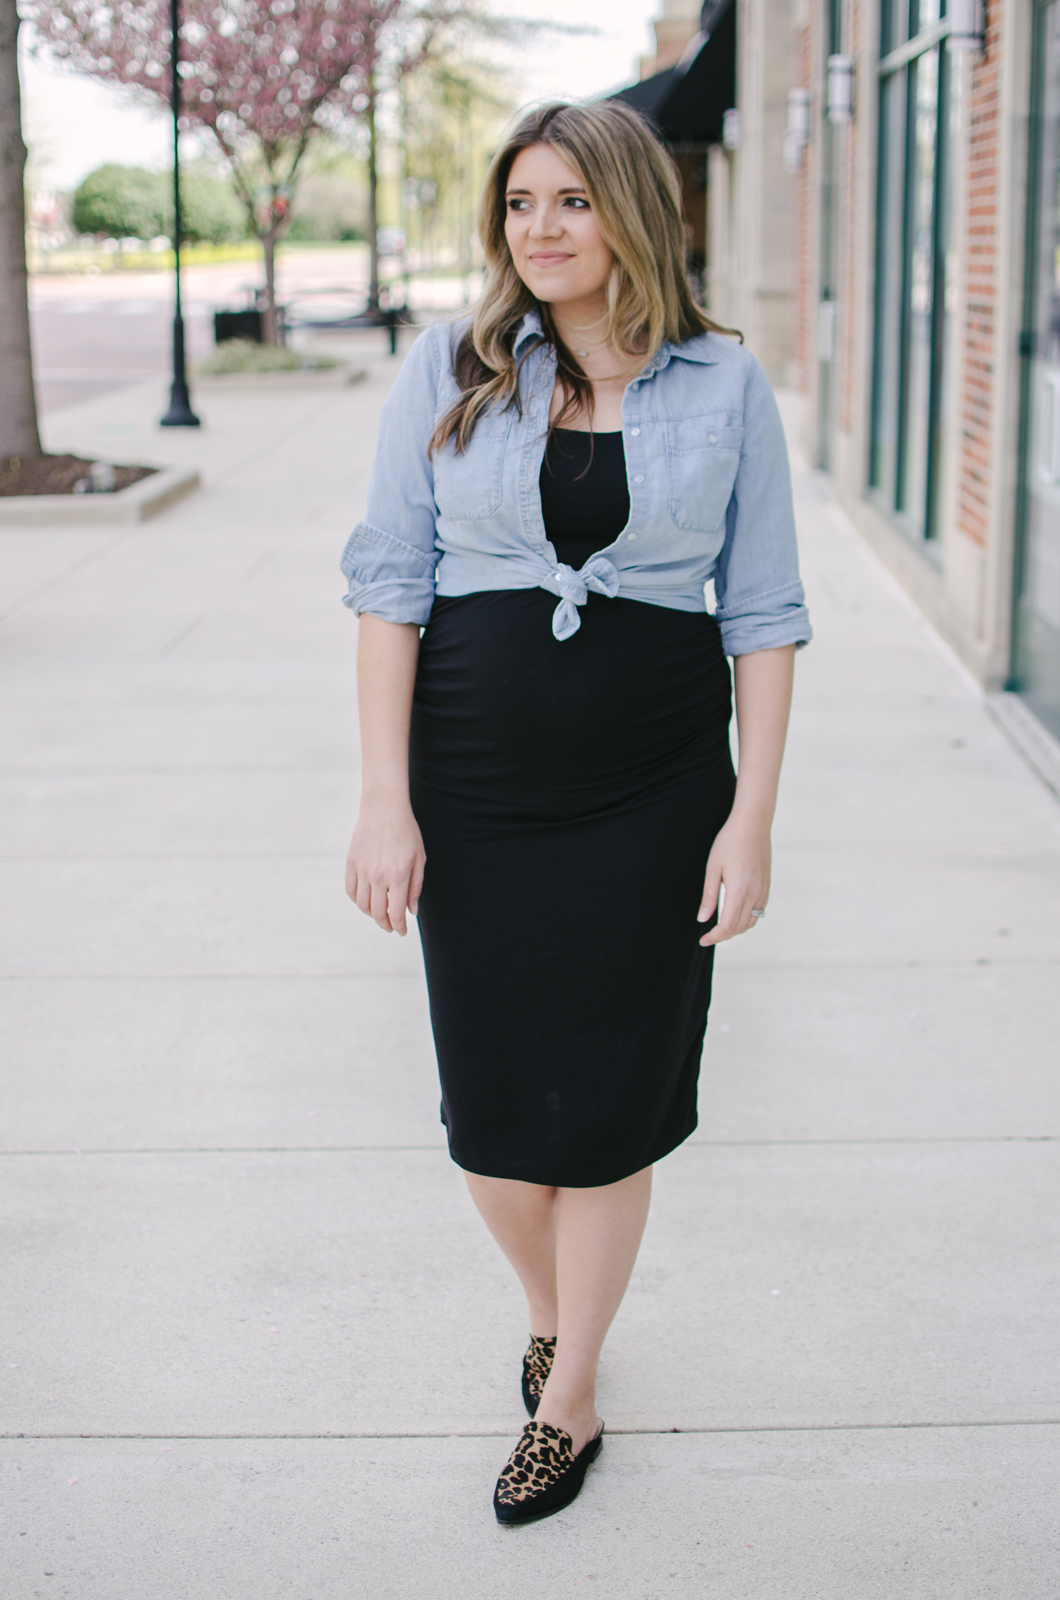 knotted chambray top pregnancy outfit | Sharing three ways to wear a chambray top during pregnancy. Click through for all three looks! bylaurenm.com!